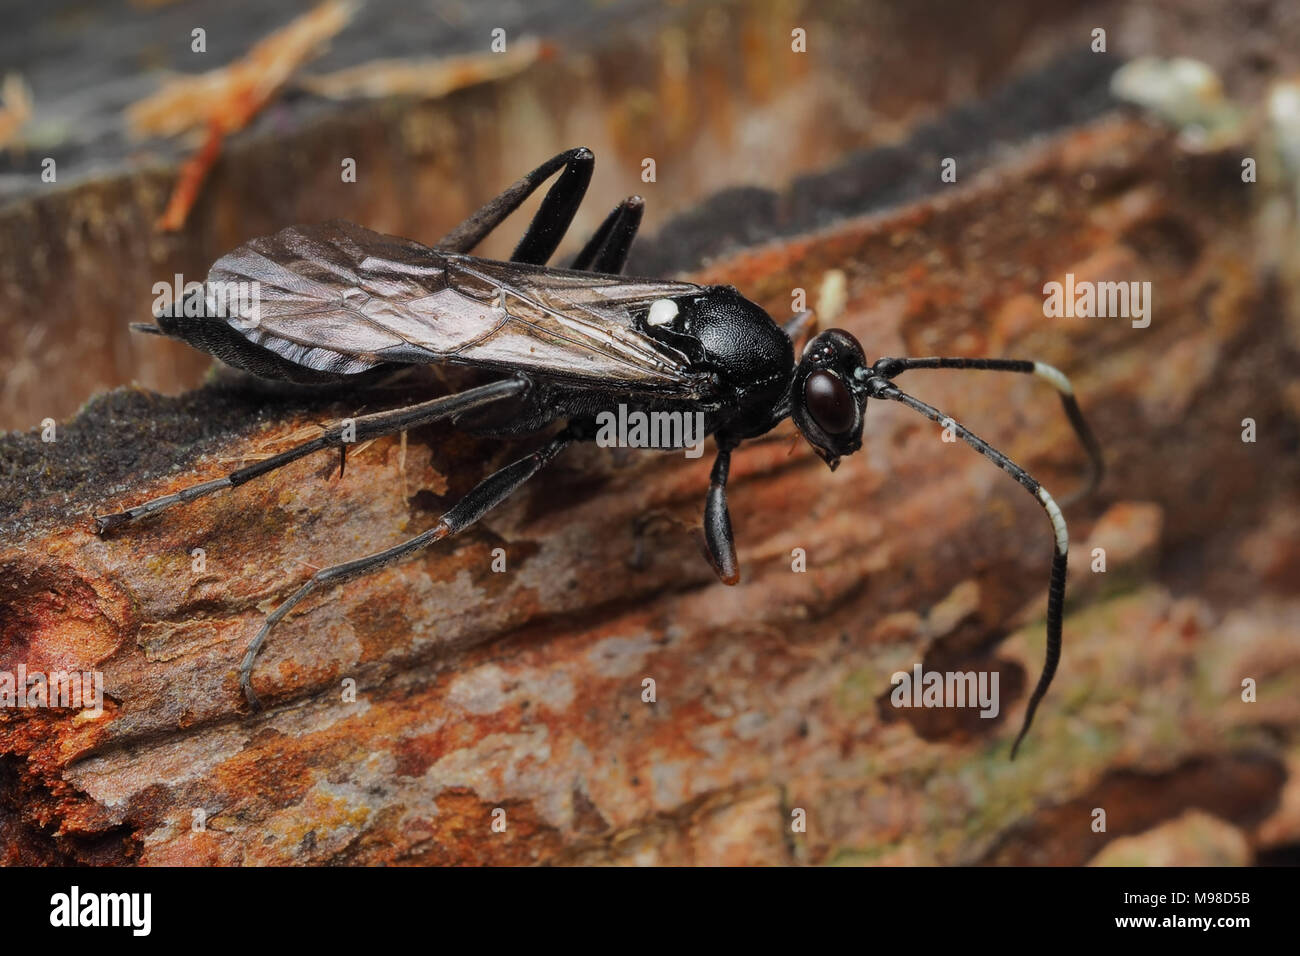 Ichneumonid Wasp resting on the bark of a fencepost. Tipperary, Ireland - Stock Image